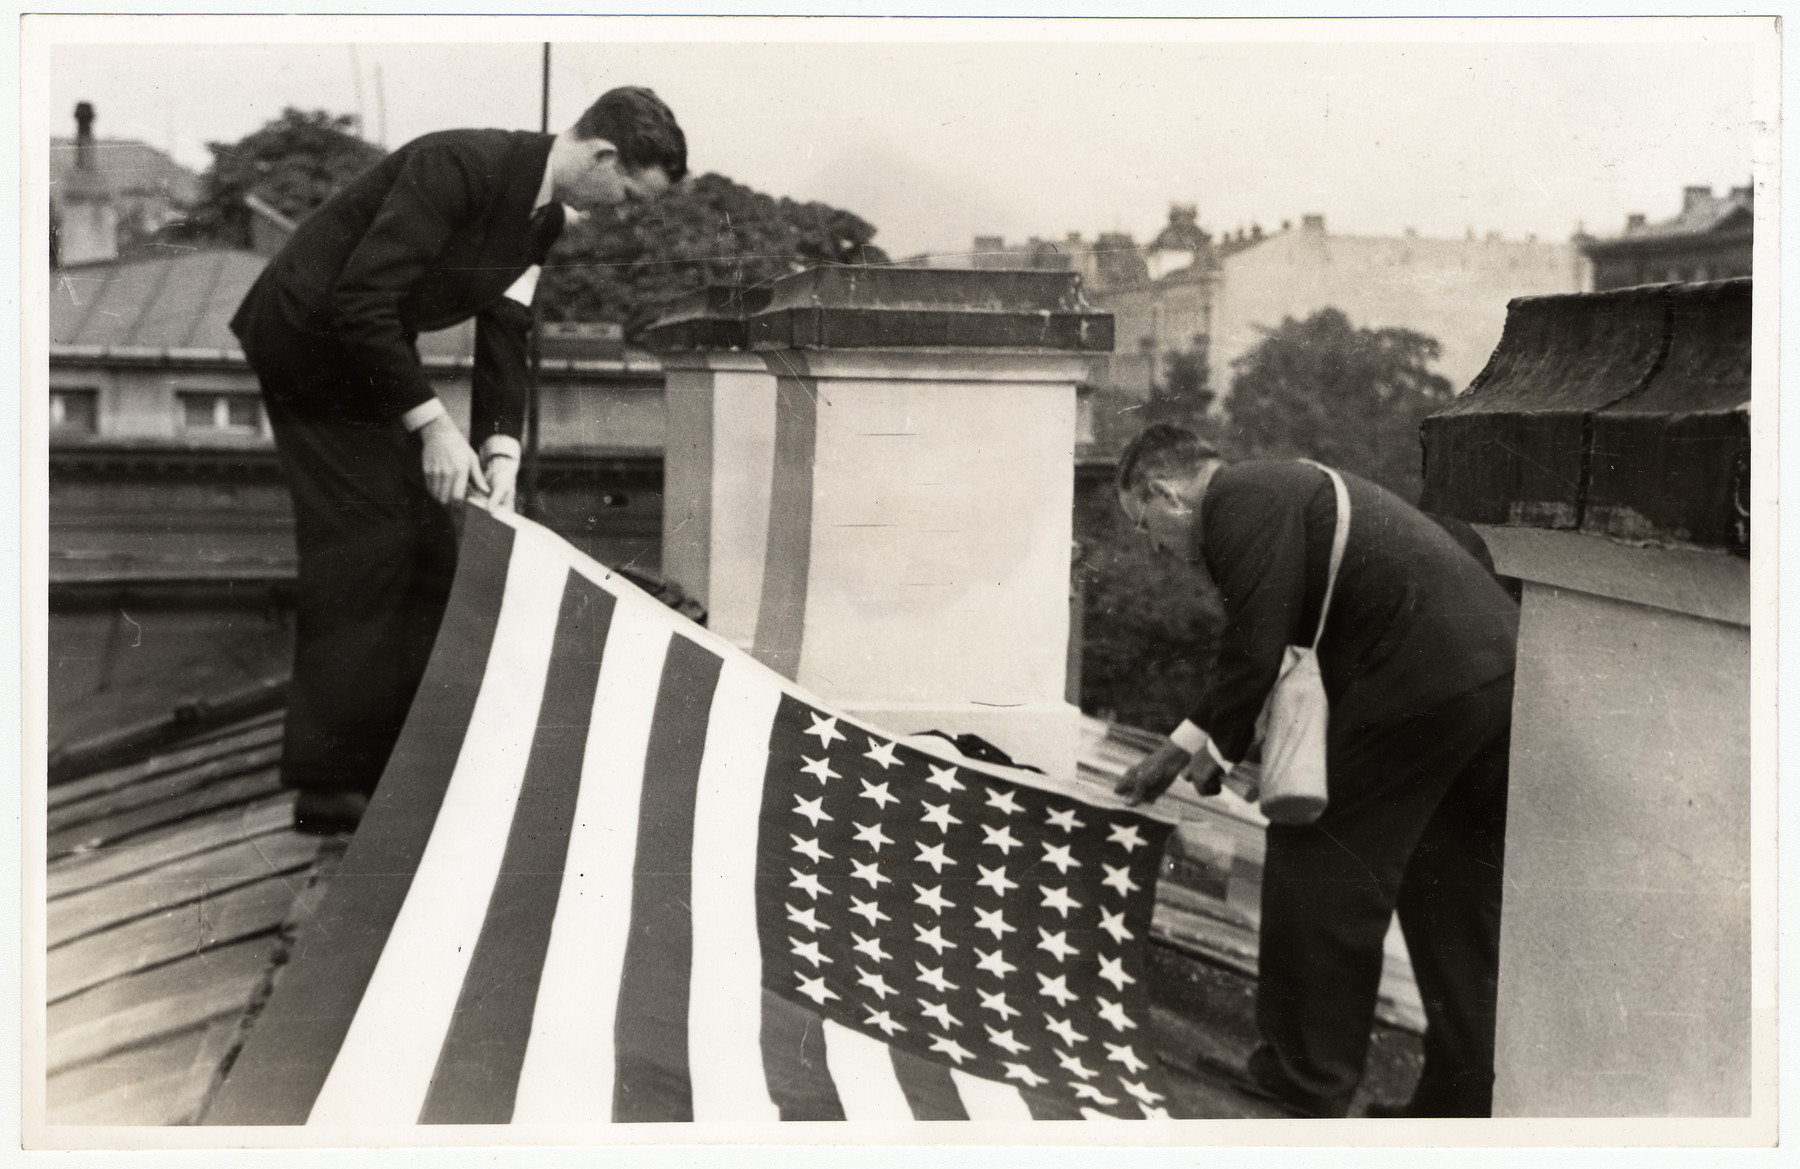 Two men unfurl a large American flag on the roof of the American Consulate.